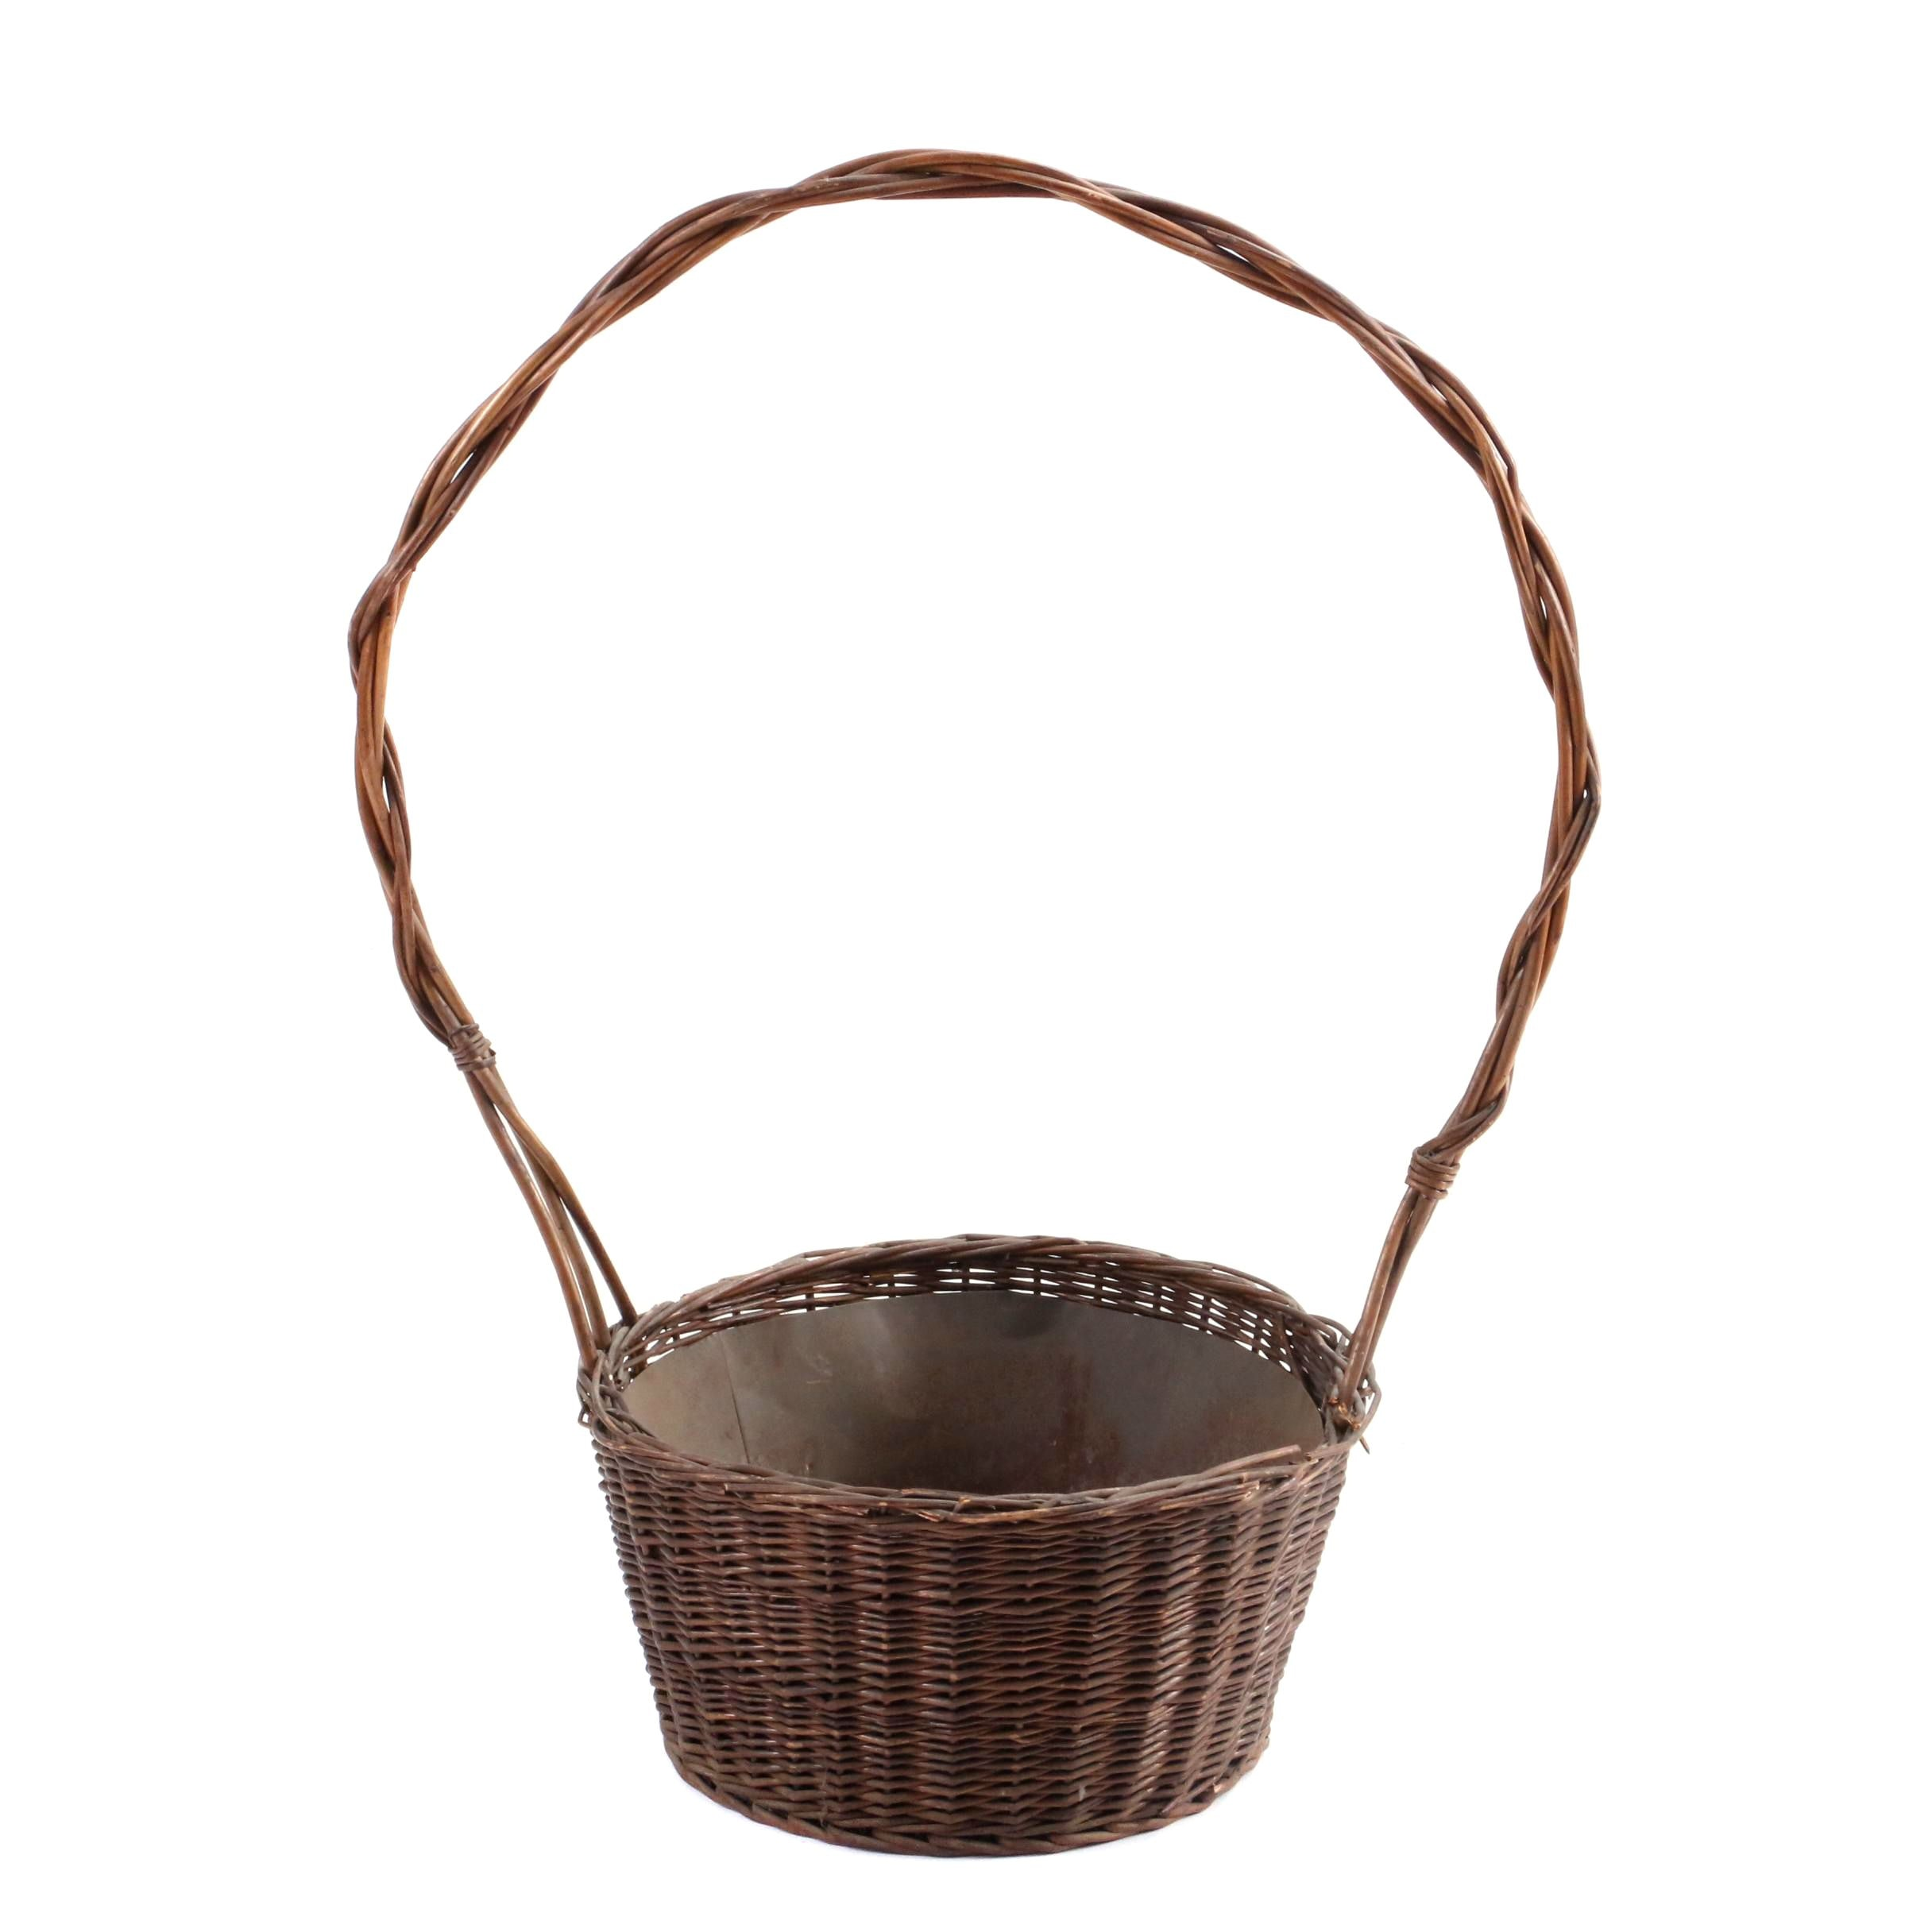 Woven Decorative Basket with Handle and Metal Liner